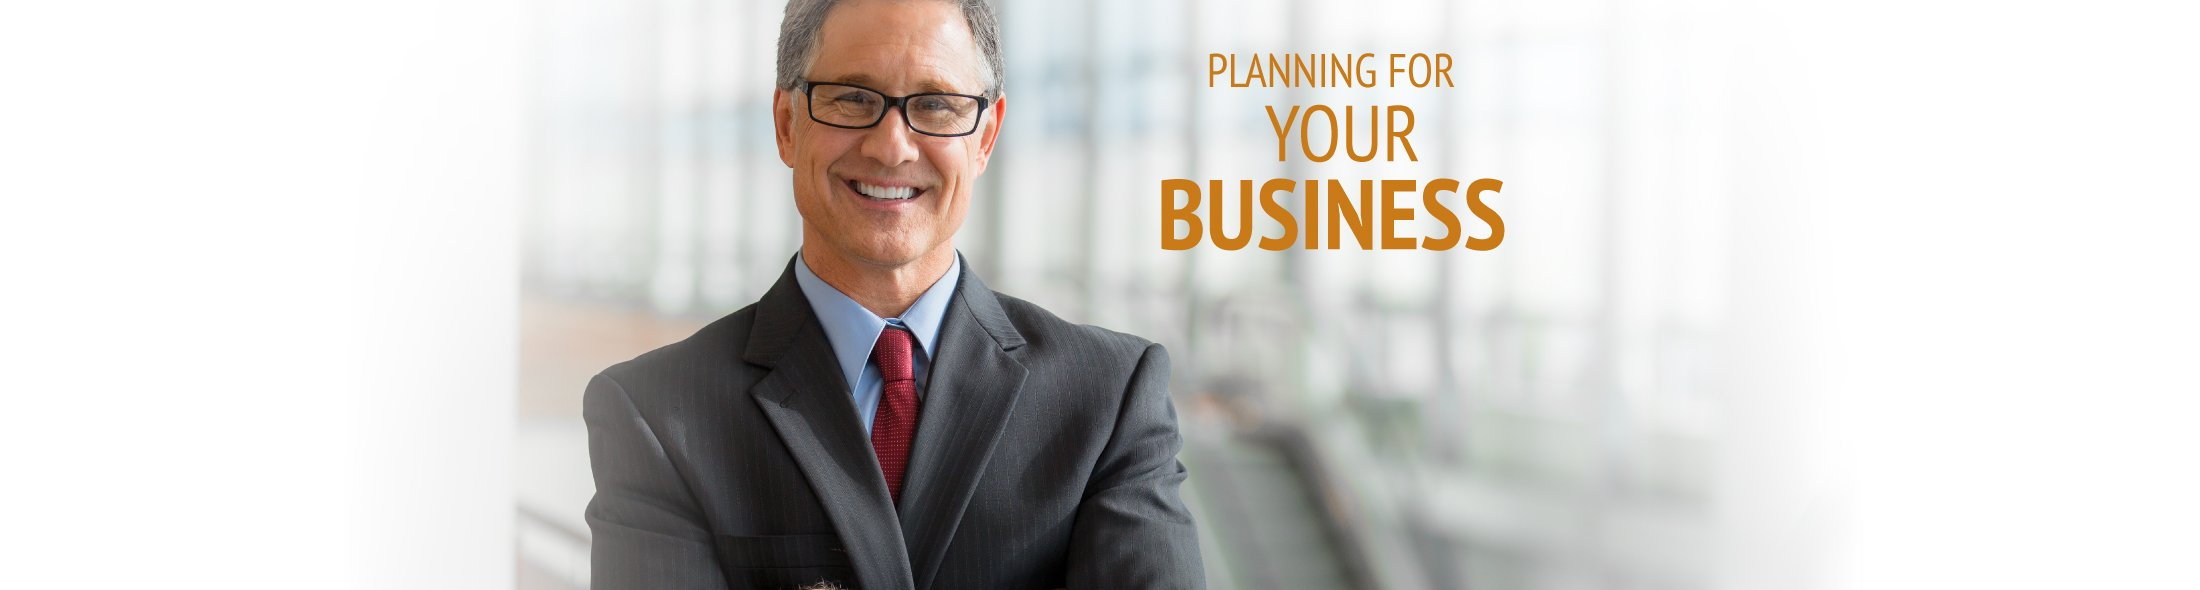 Planning for your business